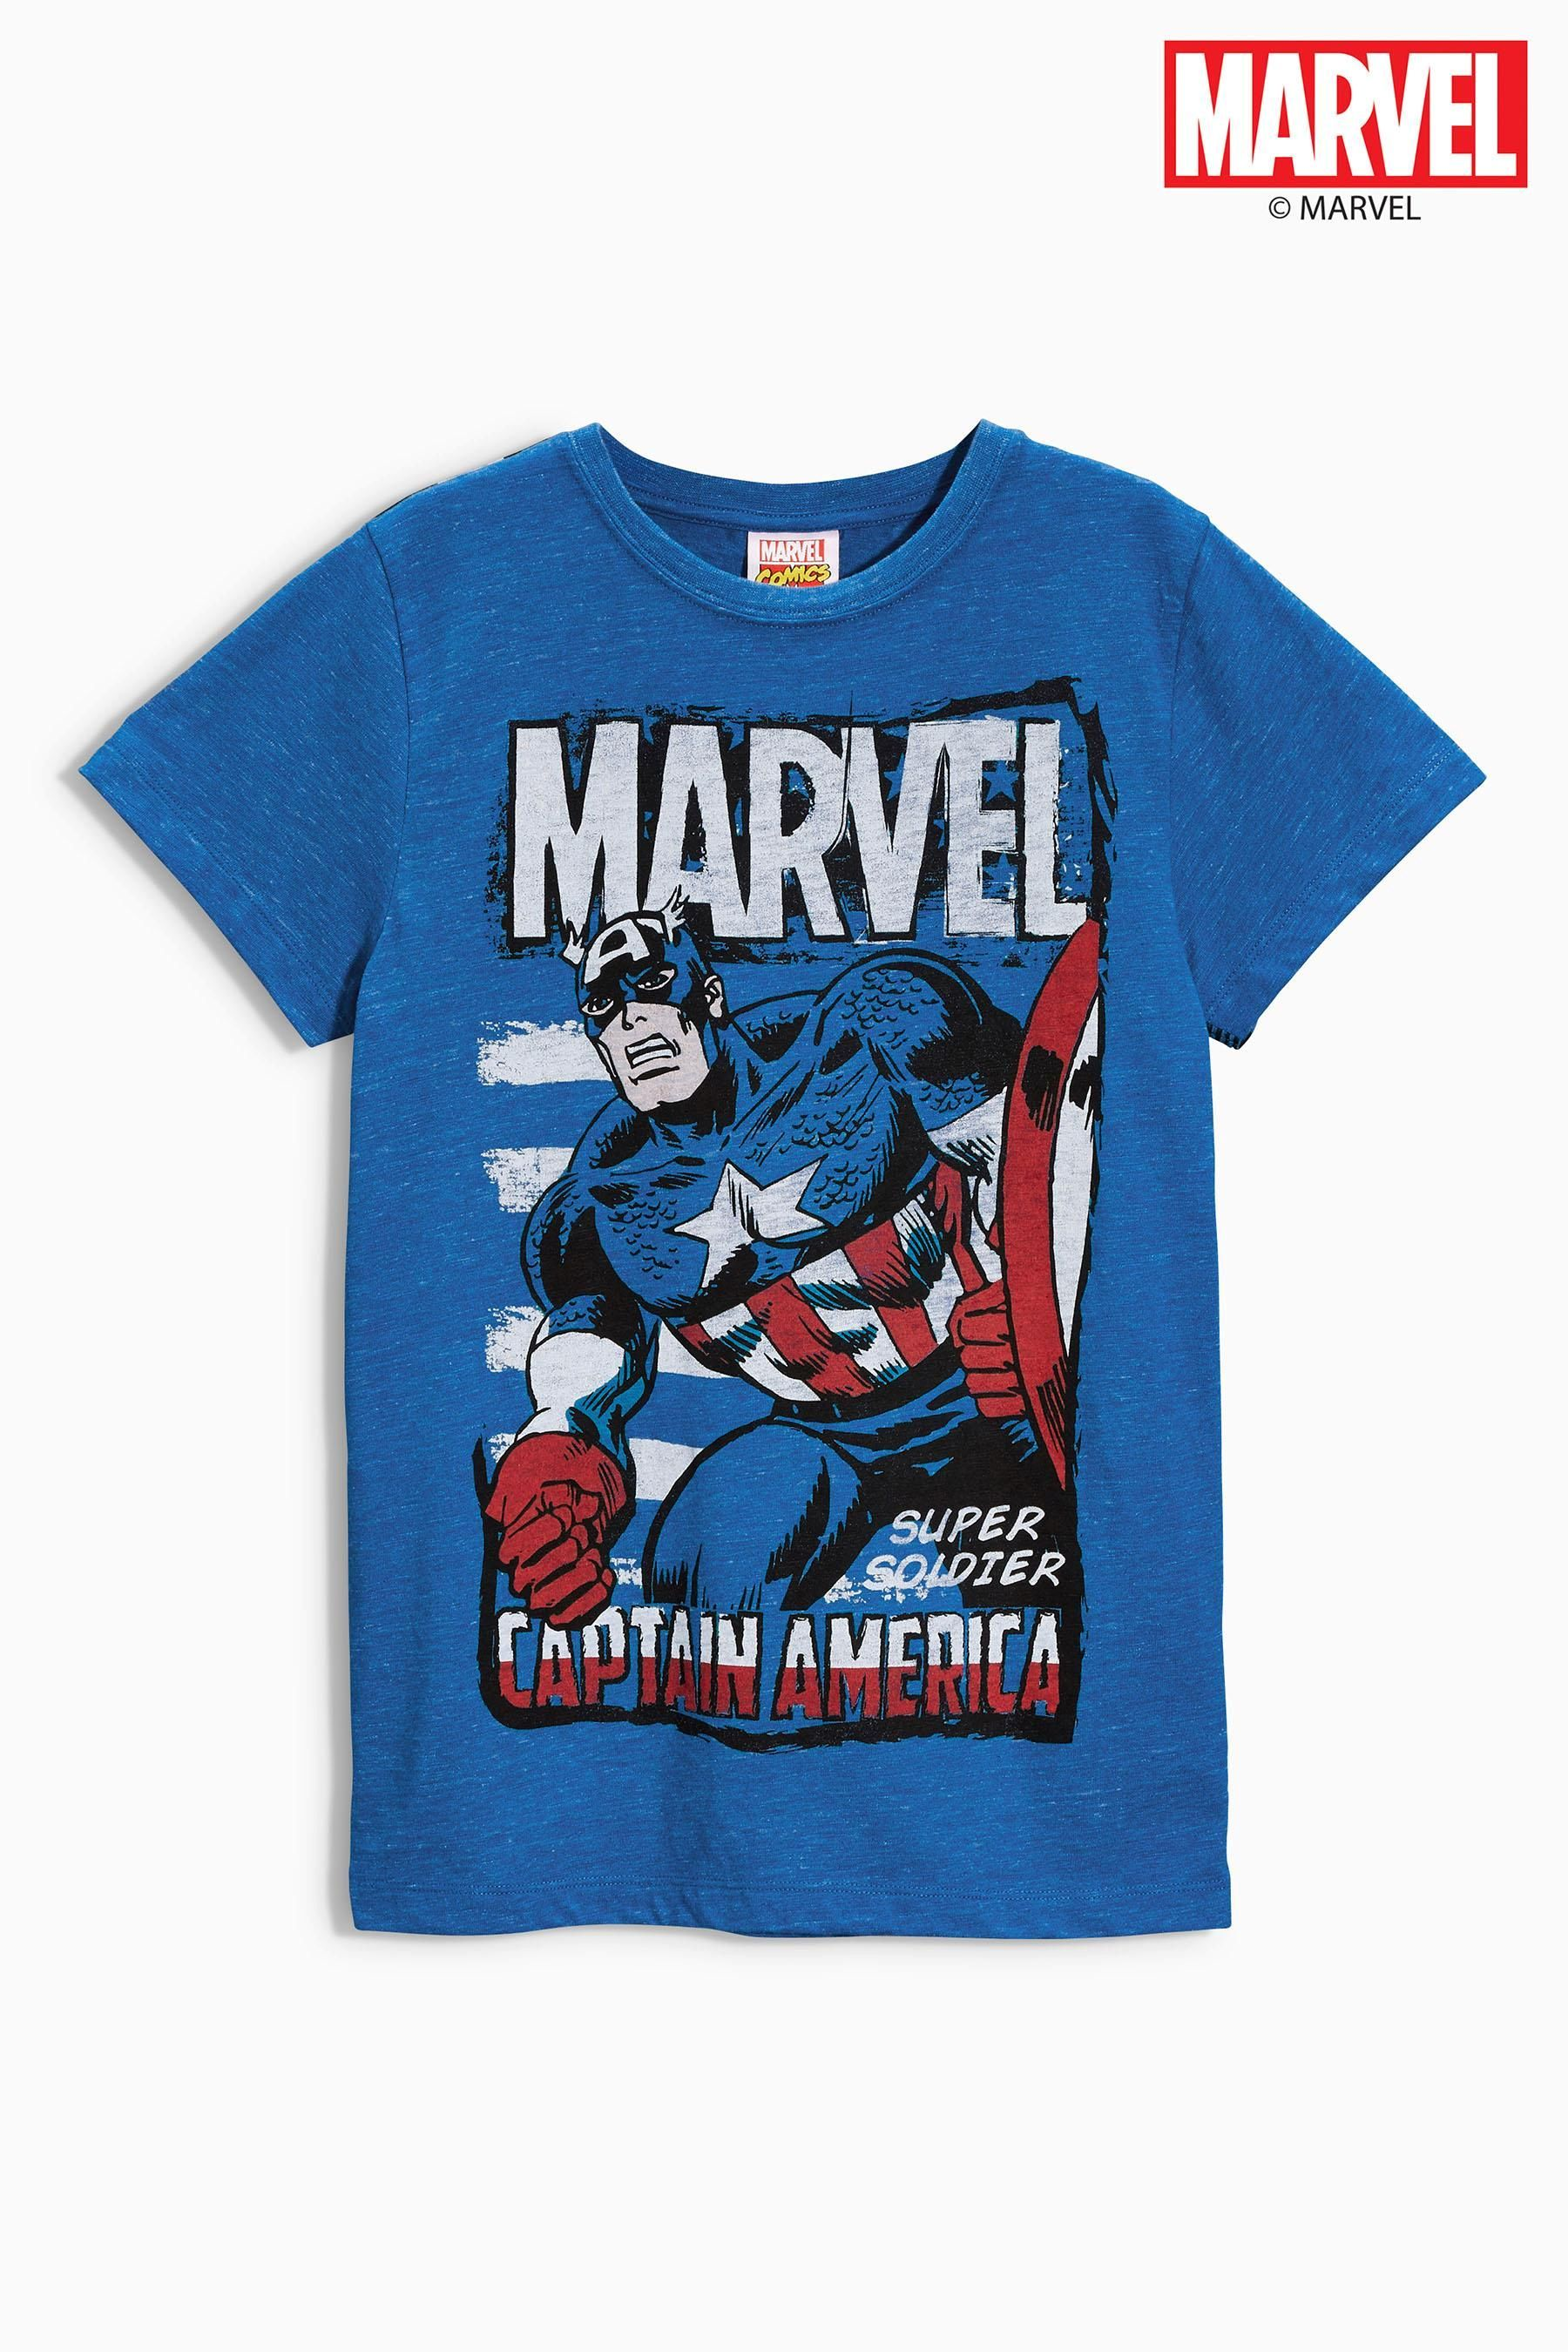 87ef213e Marvel Comic T Shirts Online | Top Mode Depot